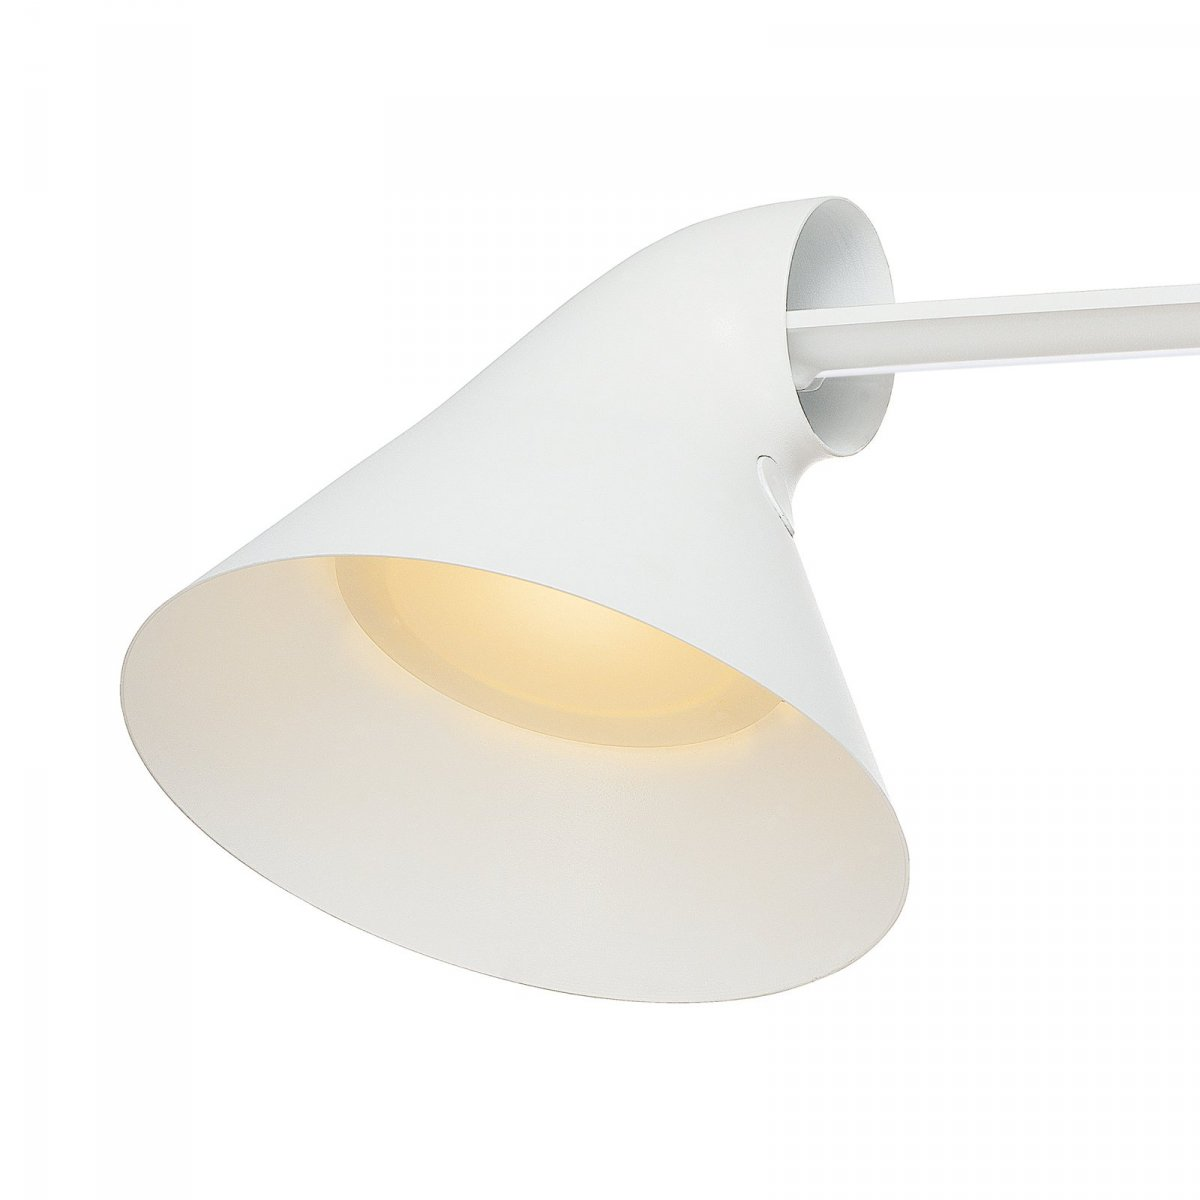 NJP Table desk lamp, white, detail.